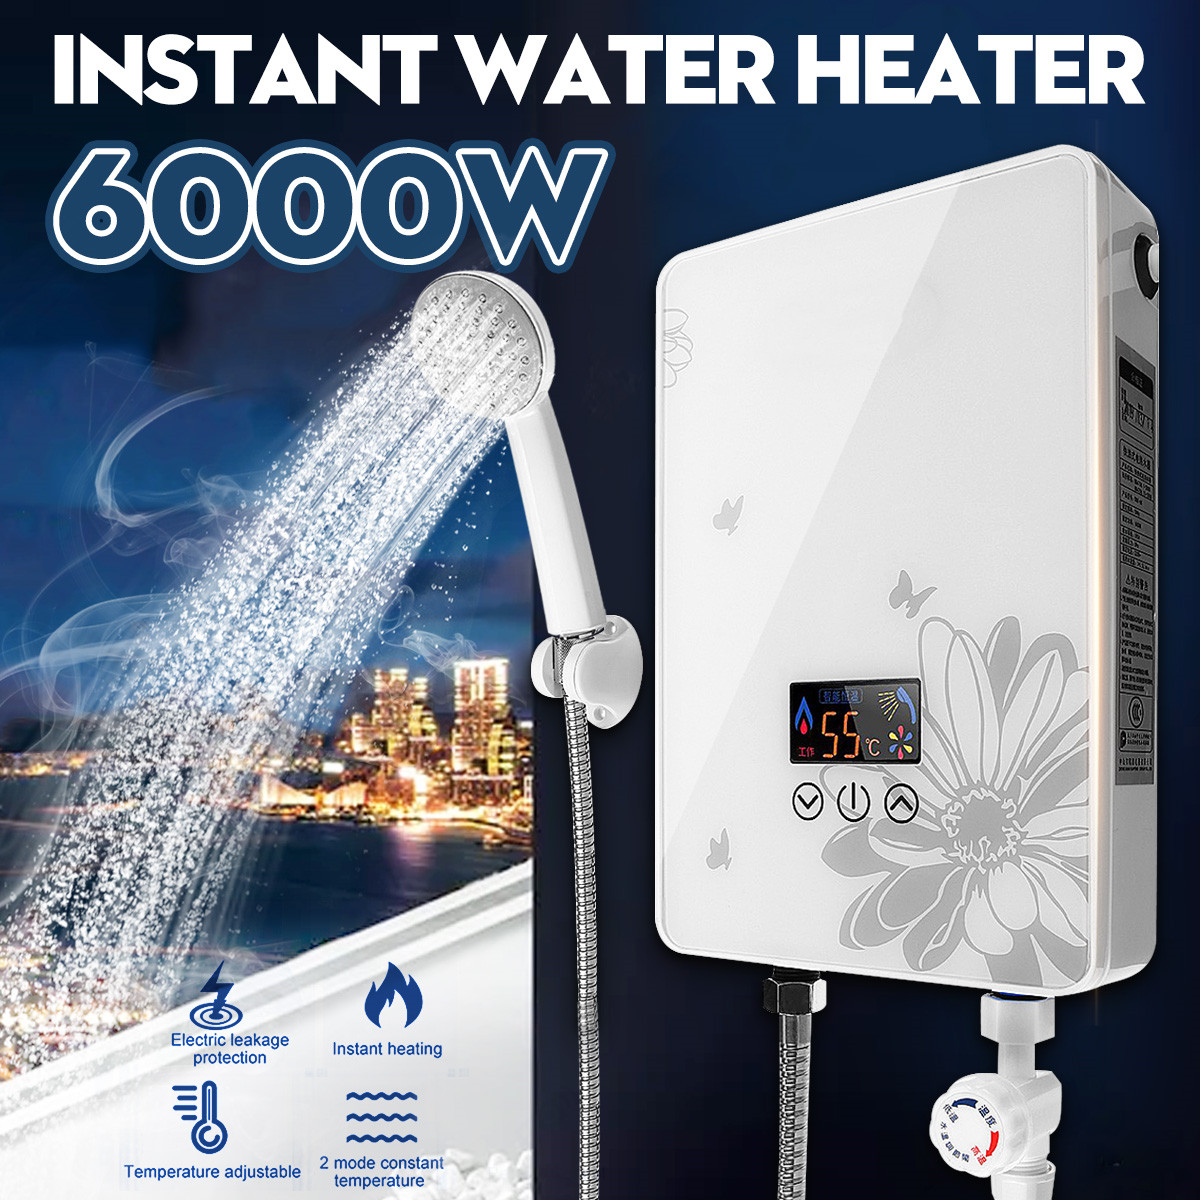 6000W Electric Water Heater Instant Heating Faucet LED Display Electric Hot Water Heater Leakage Protection Shower Home Kitchen